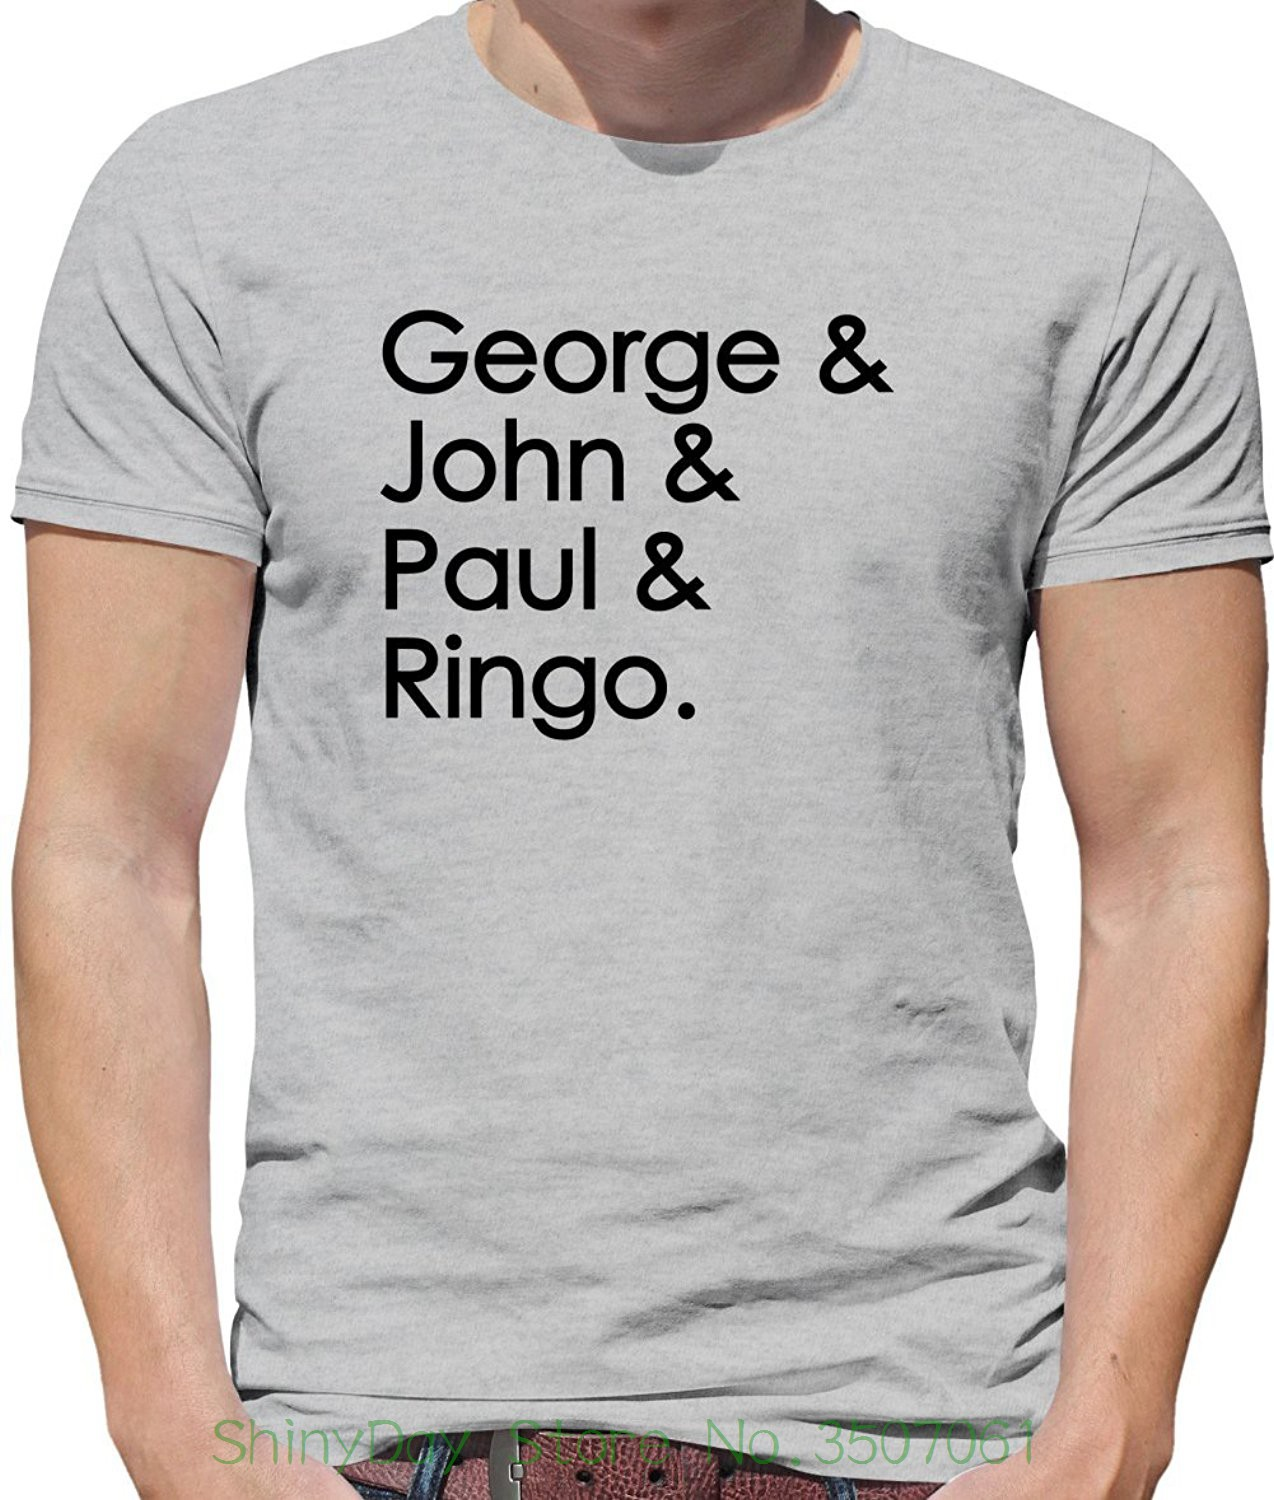 Shirts Homme Novelty Tshirt Men George & John & Paul & Ringo - Mens Crewneck T-shirt - 7 Colours